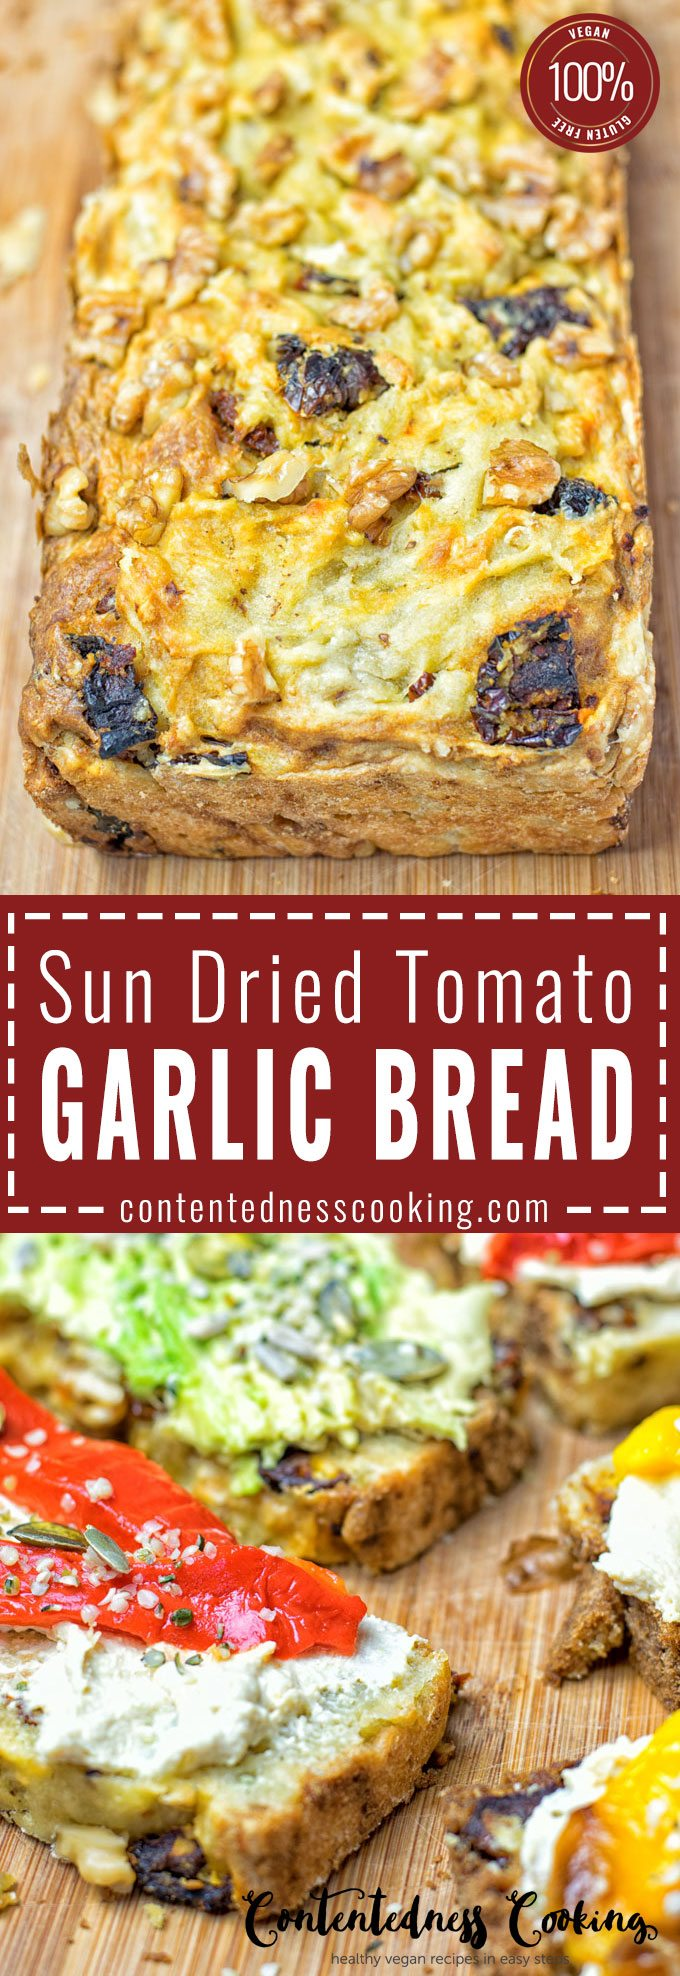 Collage of two pictures of the Sun Dried Tomato Garlic Bread with recipe title text.